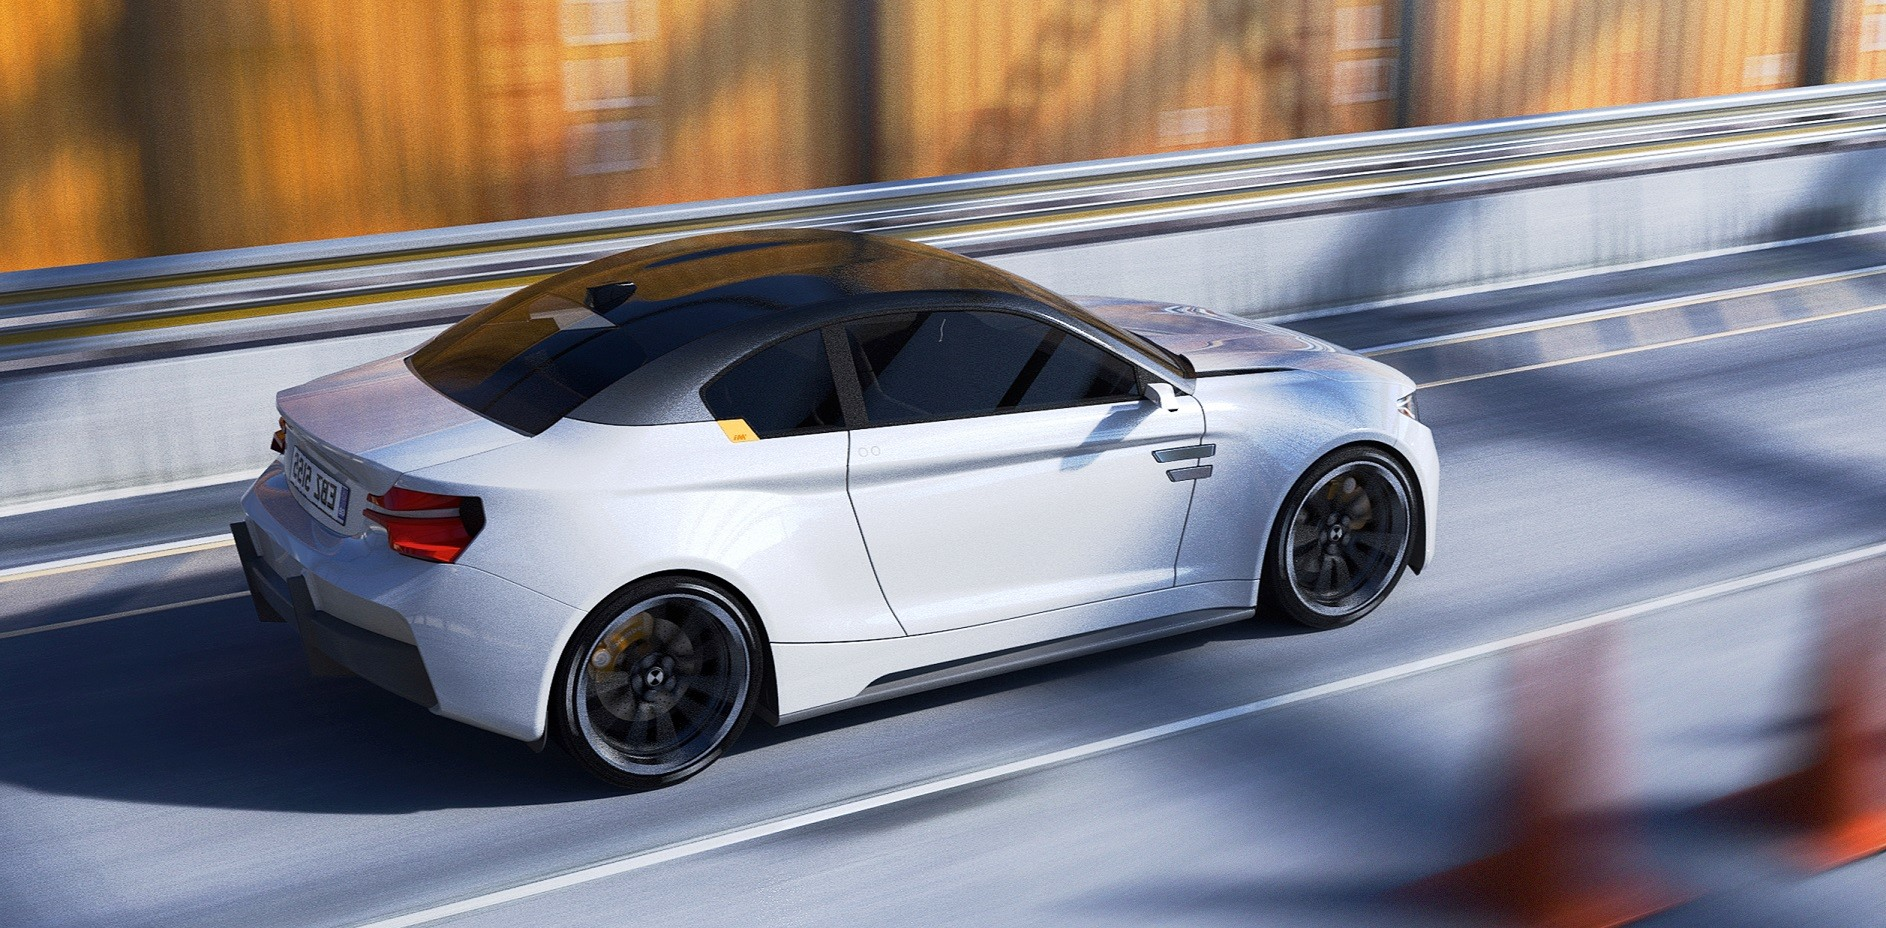 concept-bmw-im2-coupe-has-tesla-like-grille-and-aggressive-proportions_6.jpg